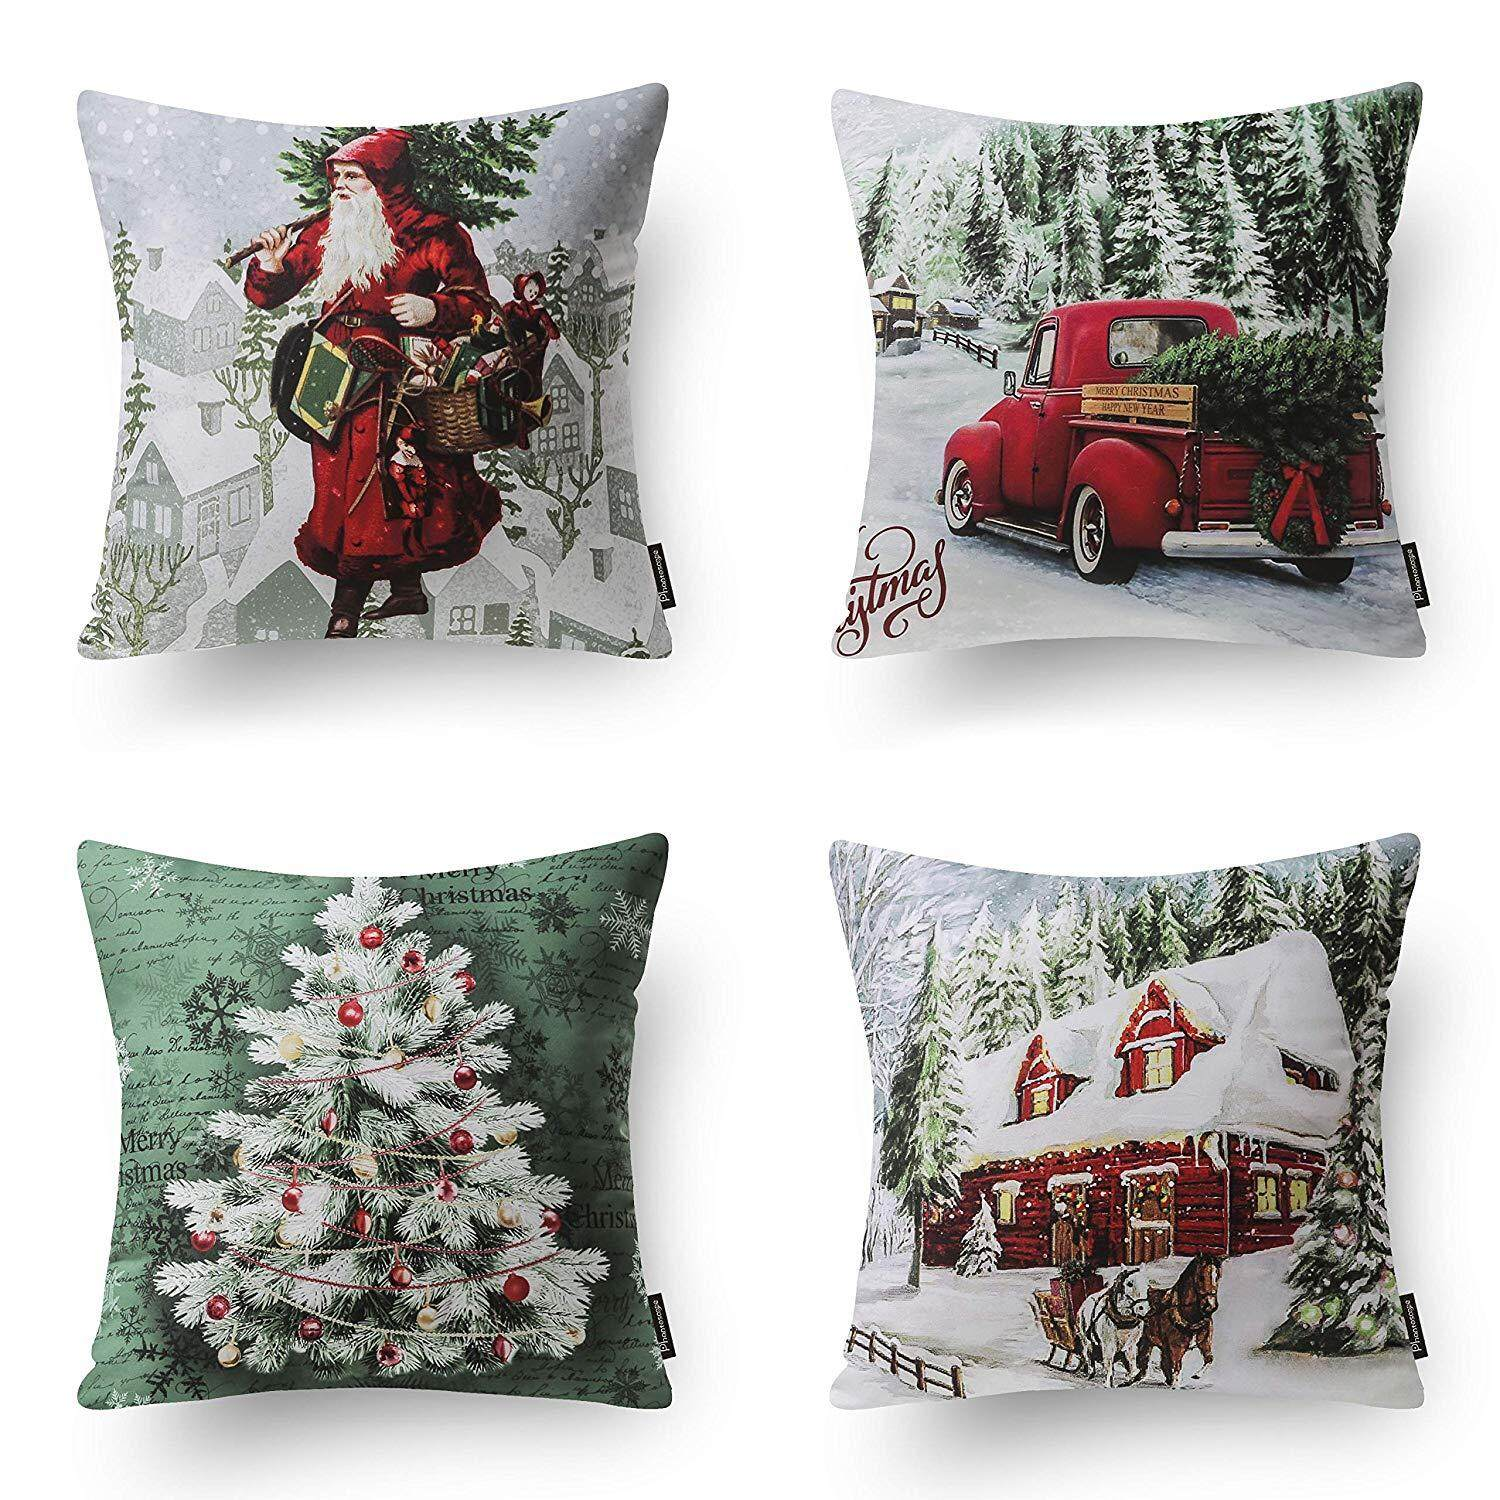 4 New Merry Christmas Modern Santa Clause Throw Pillow Case Cushion Cover By Ertic.